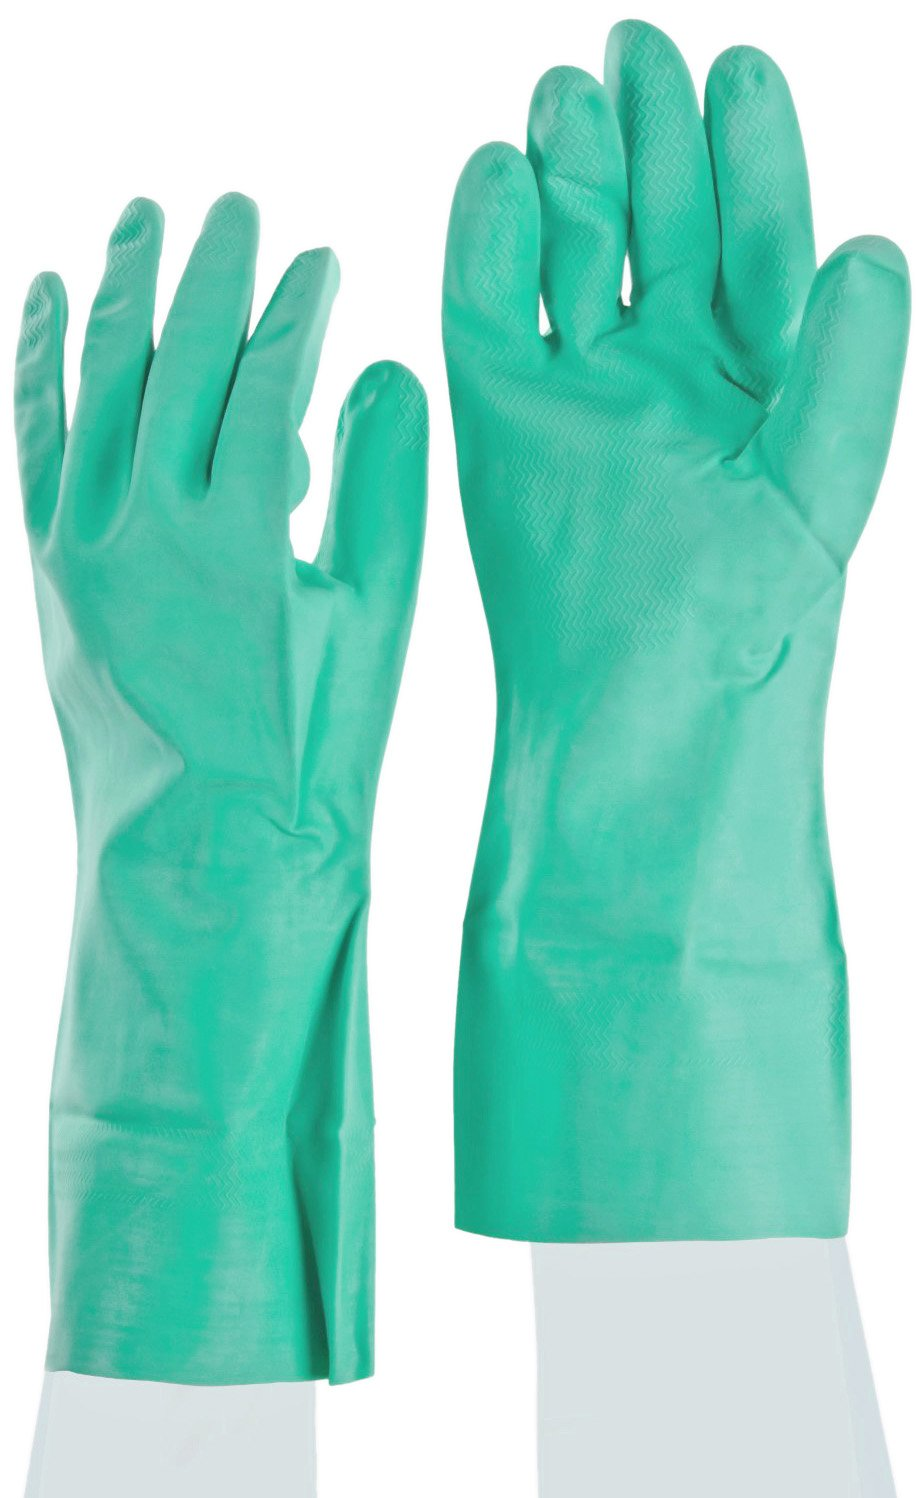 SHOWA NM15FL Flock-Lined Nitrile Glove, Chemical Resistant, 15 mils Thick, 13'' Length, XXL (Pack of 12 Pairs)